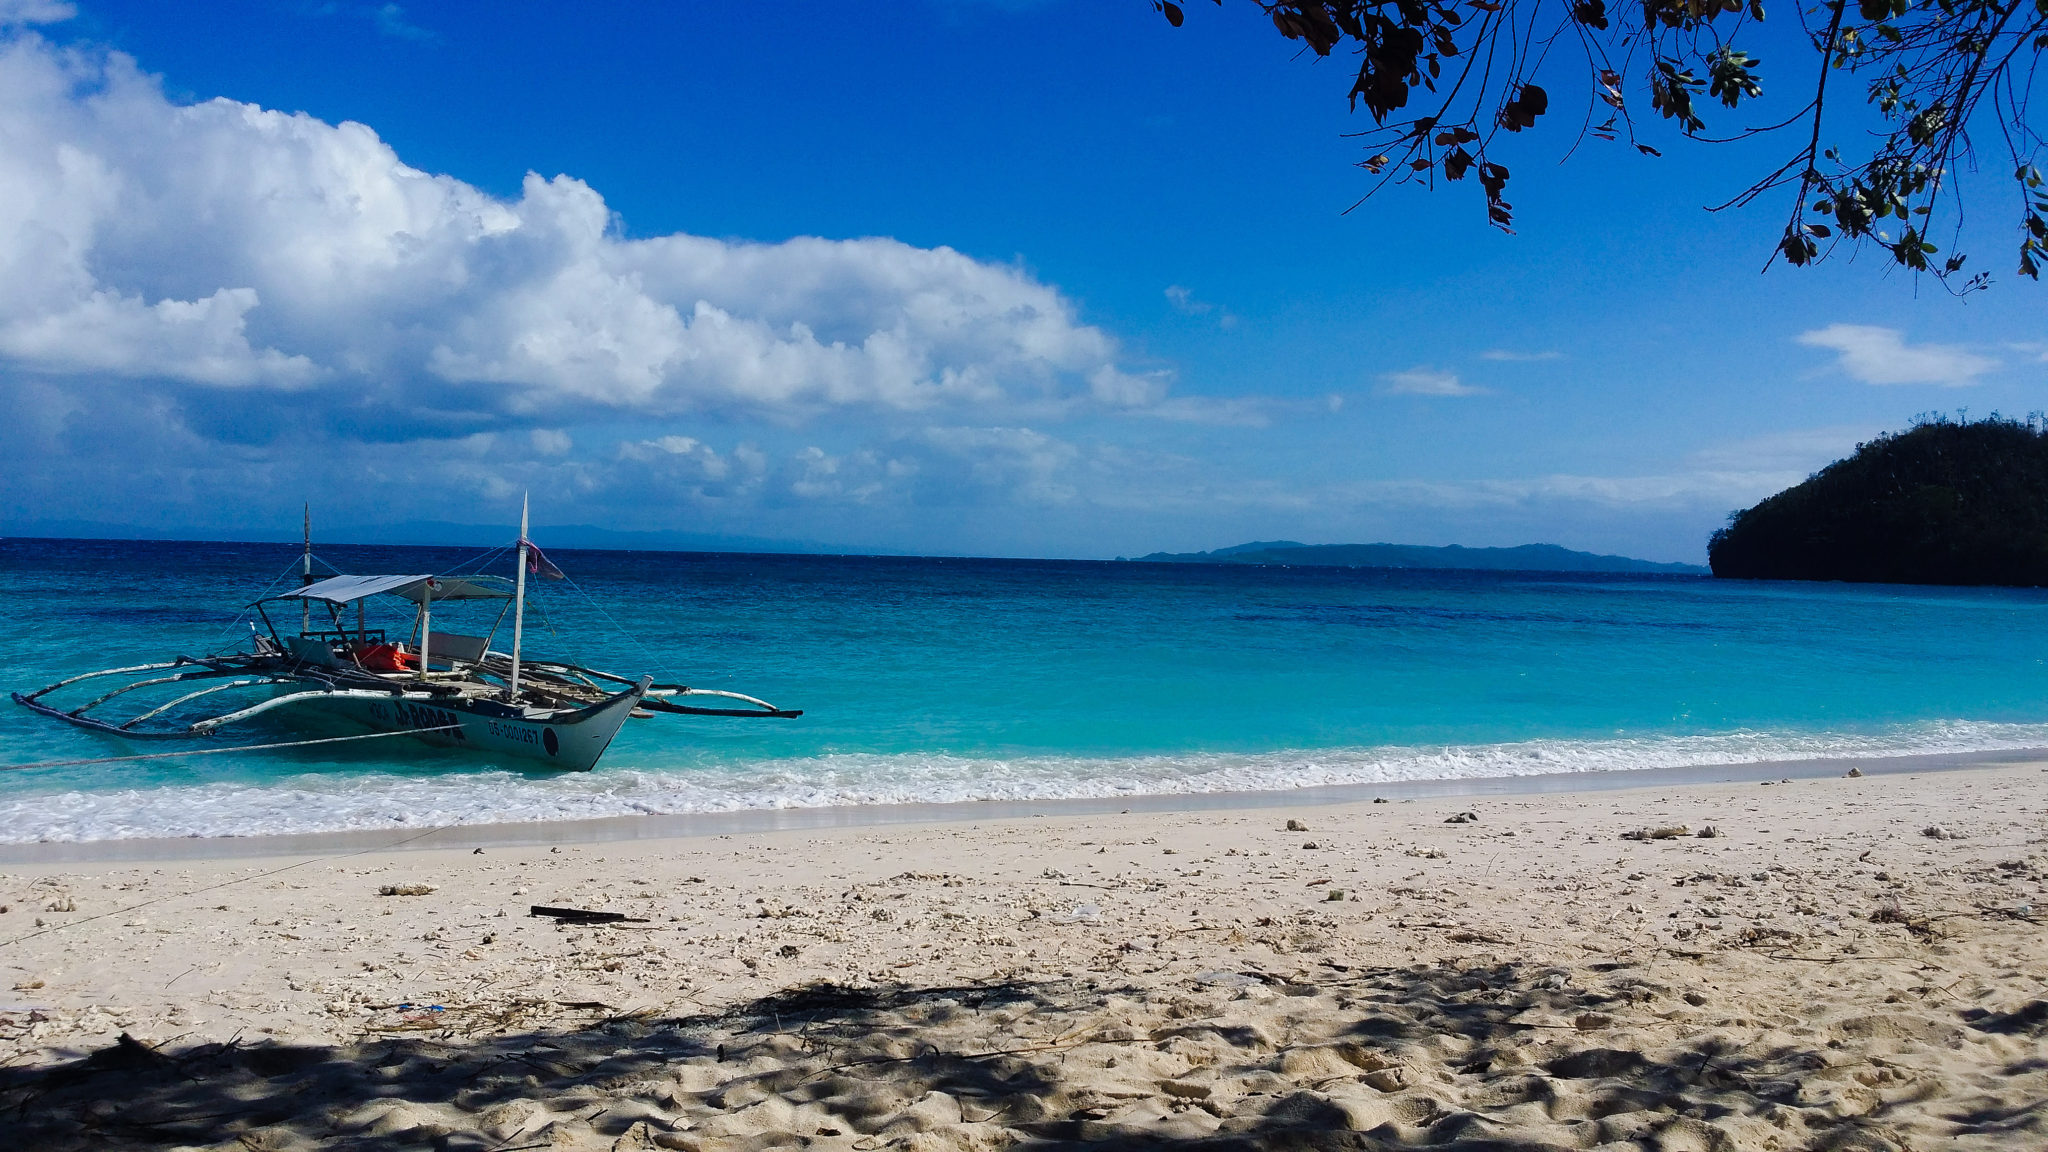 HAVE YOU BEEN TO SUBIC BEACH?